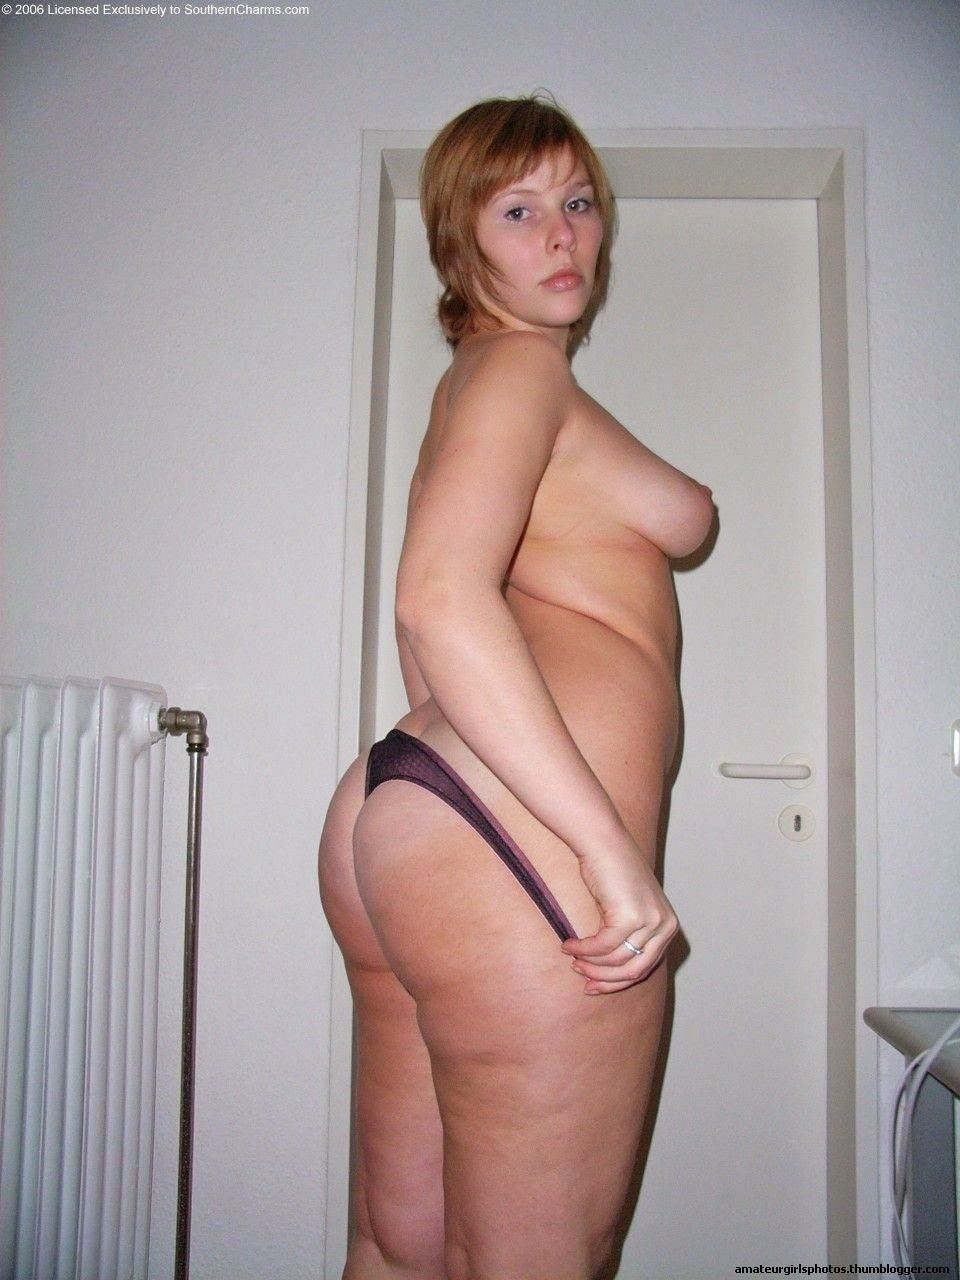 nude Southern charms